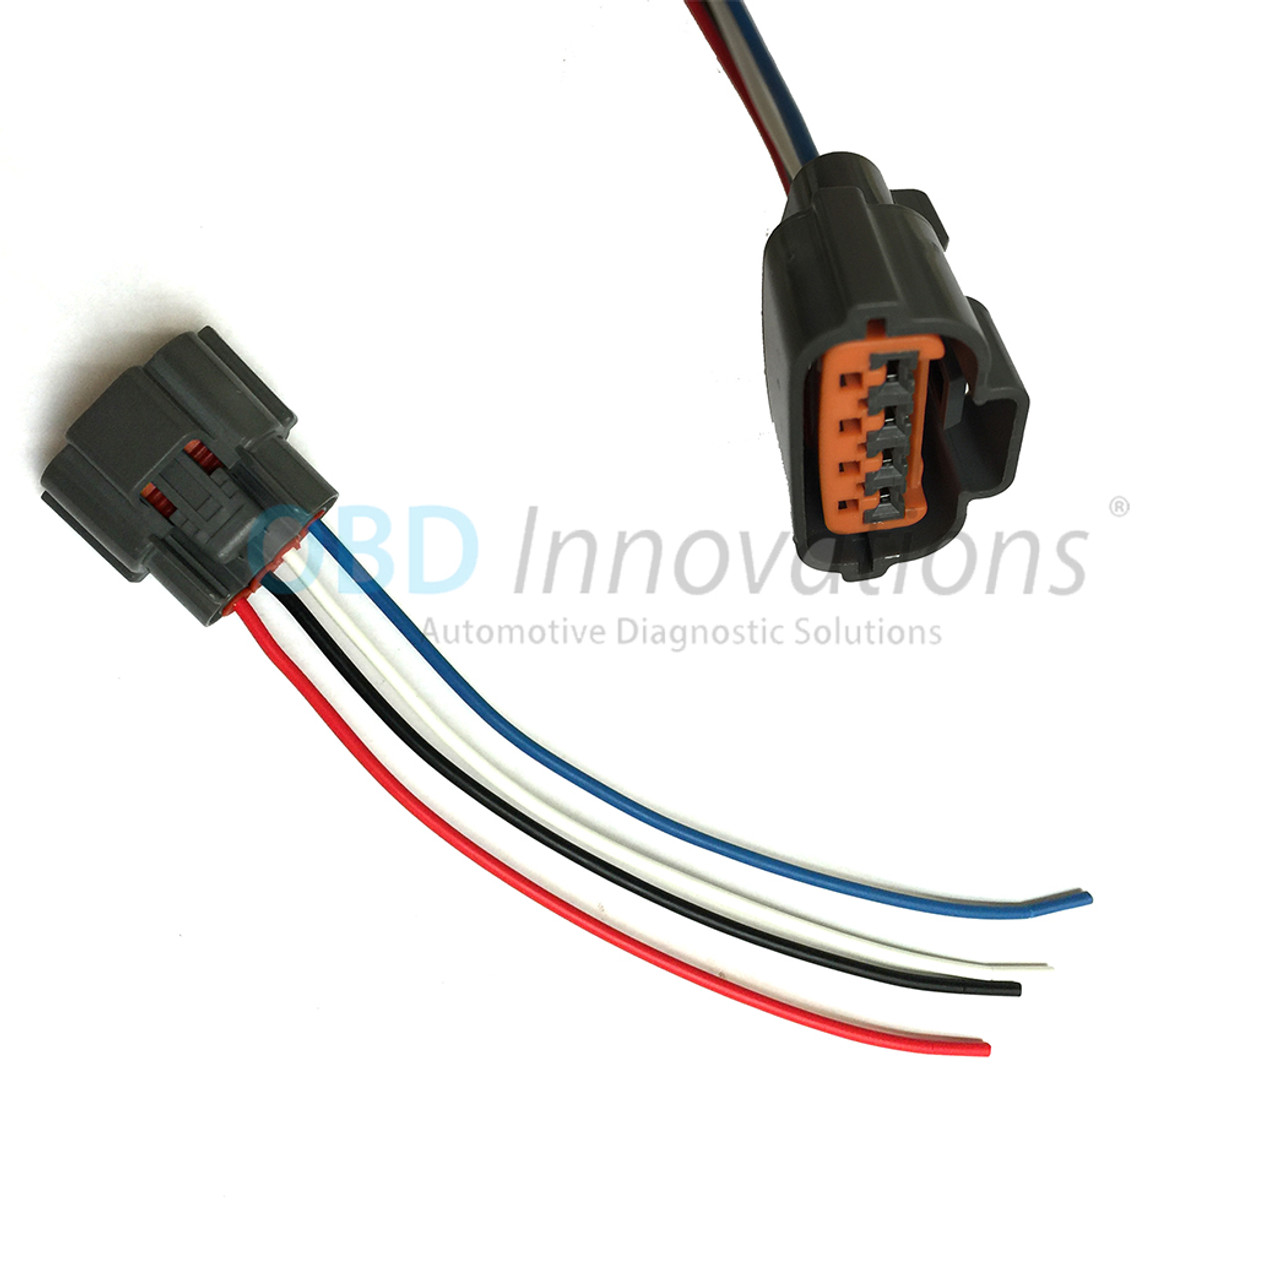 hight resolution of alternator harness connector pigtail for nissan infiniti mitsubishi hitachi chrysler